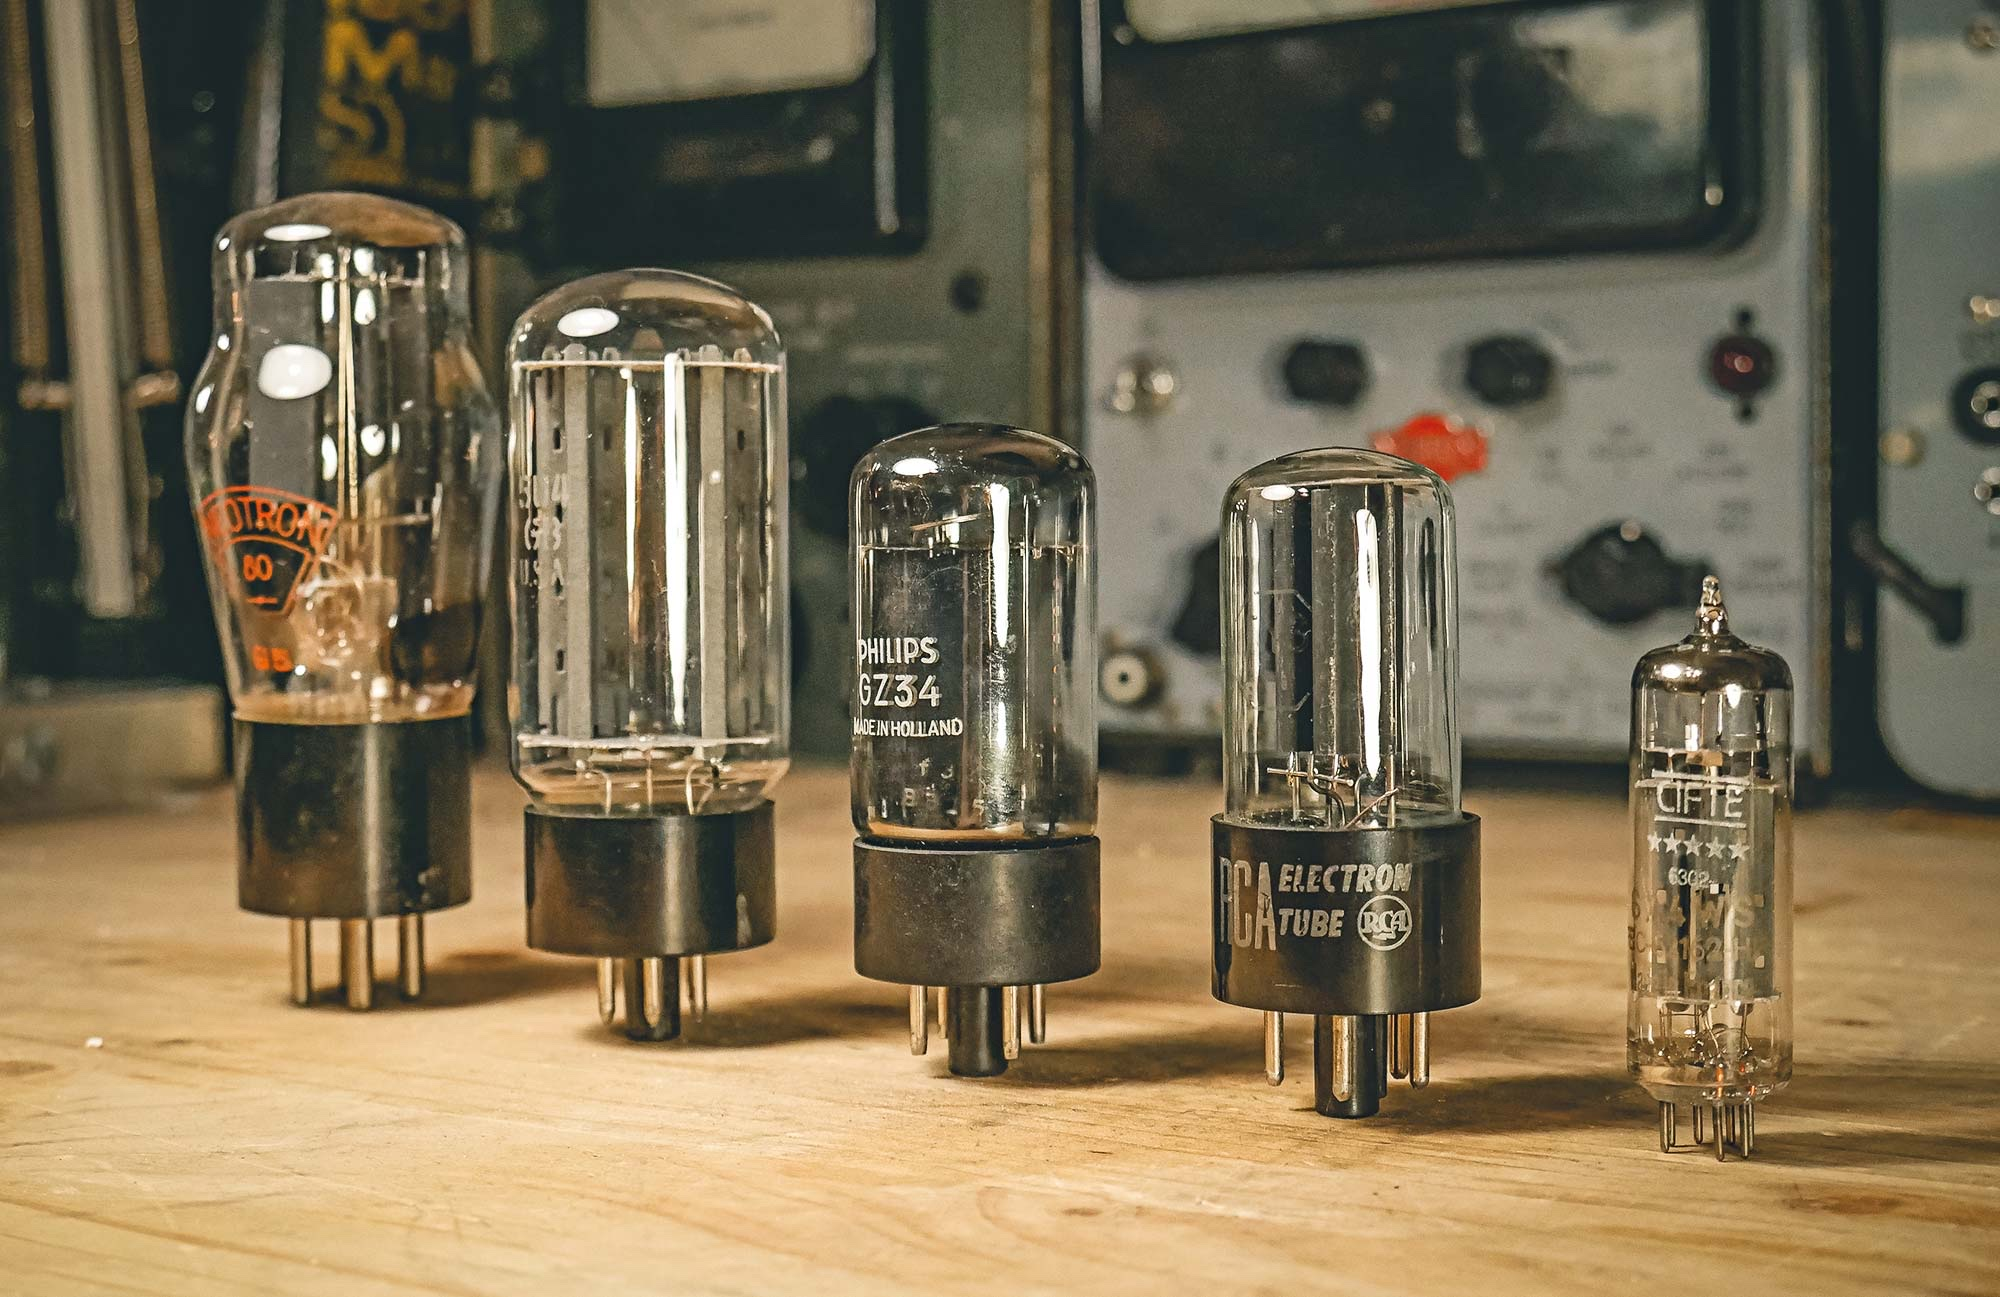 A collection of tube rectifiers